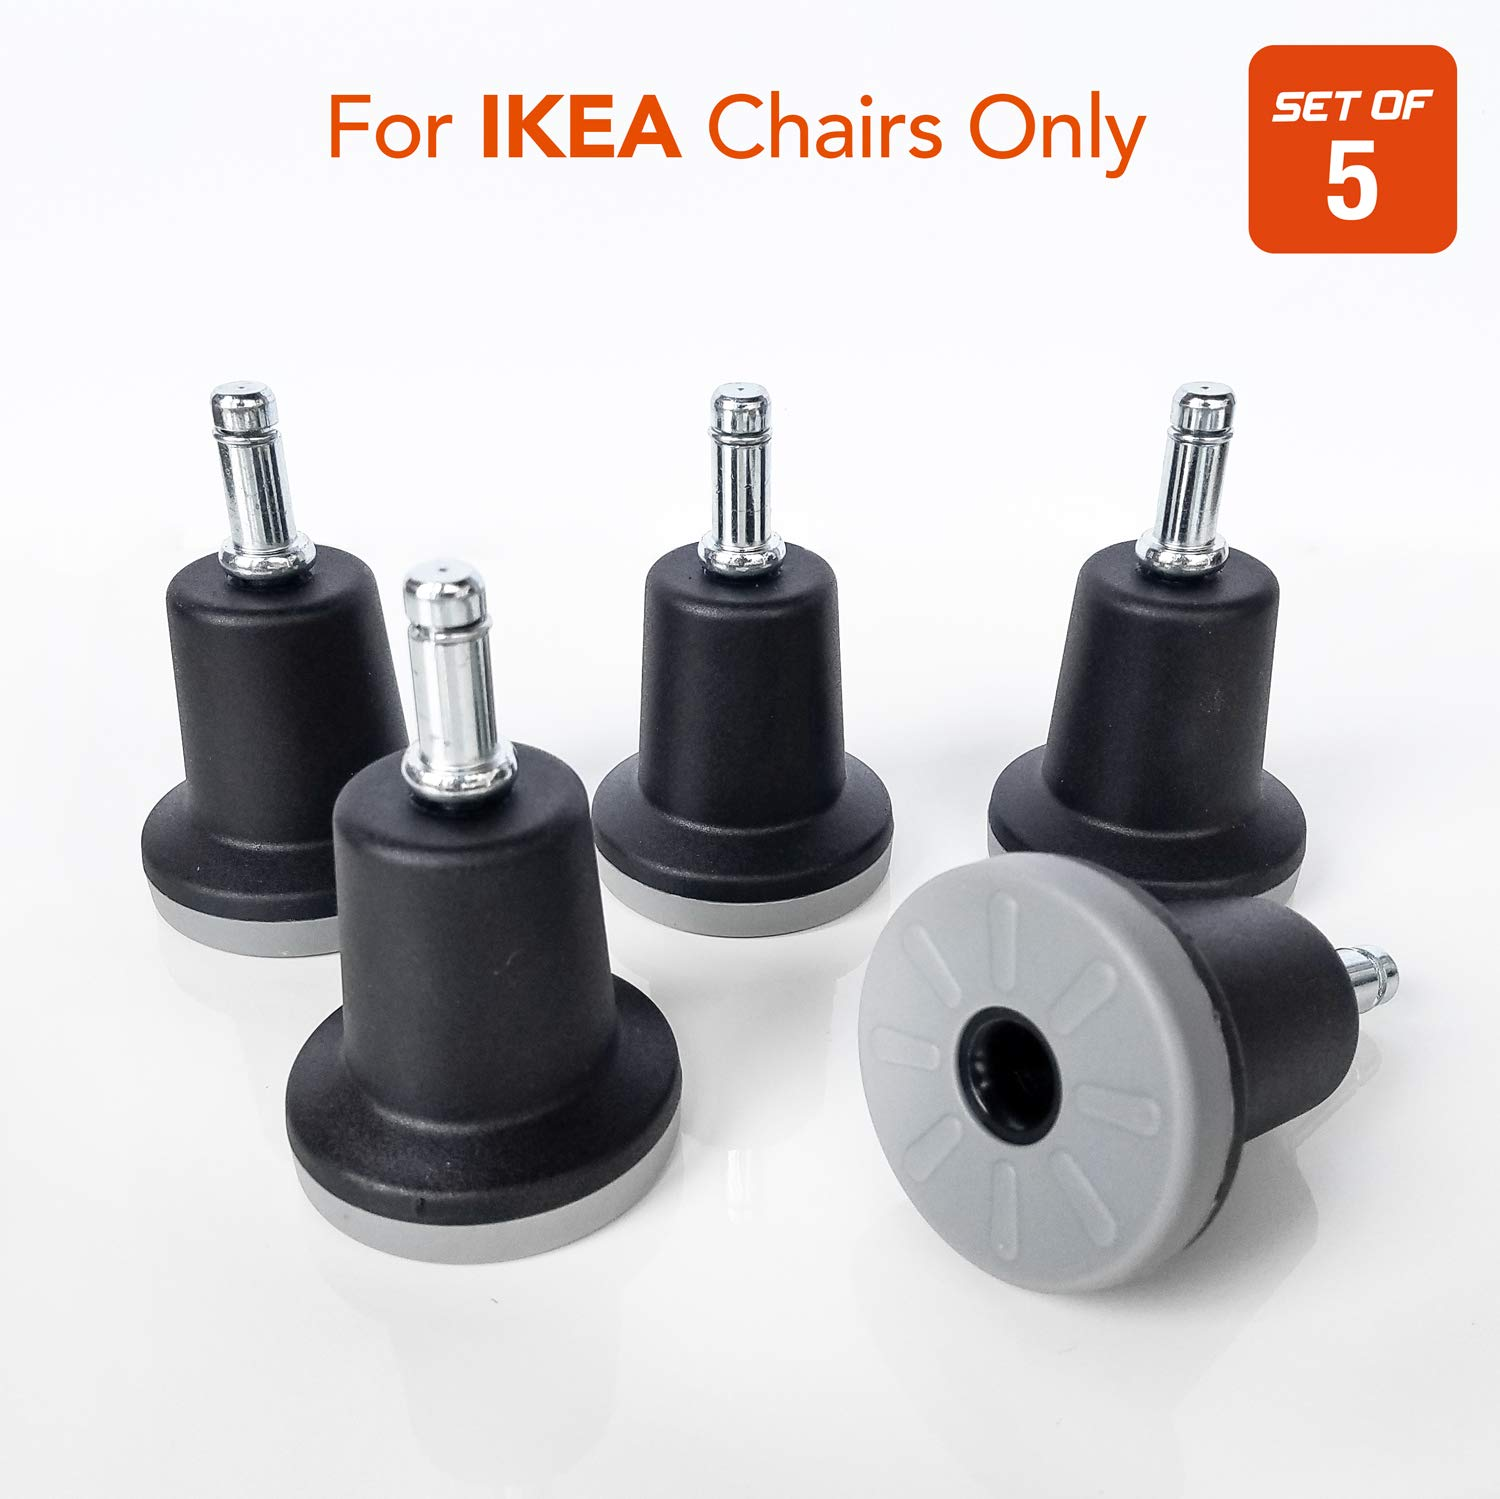 Stupendous Mahja Bell Glides Office Chair Wheels Replacement Compatible With Ikea Office Chairs Only 10Mm Diameter Size Stem Chair Casters Replacement Camellatalisay Diy Chair Ideas Camellatalisaycom